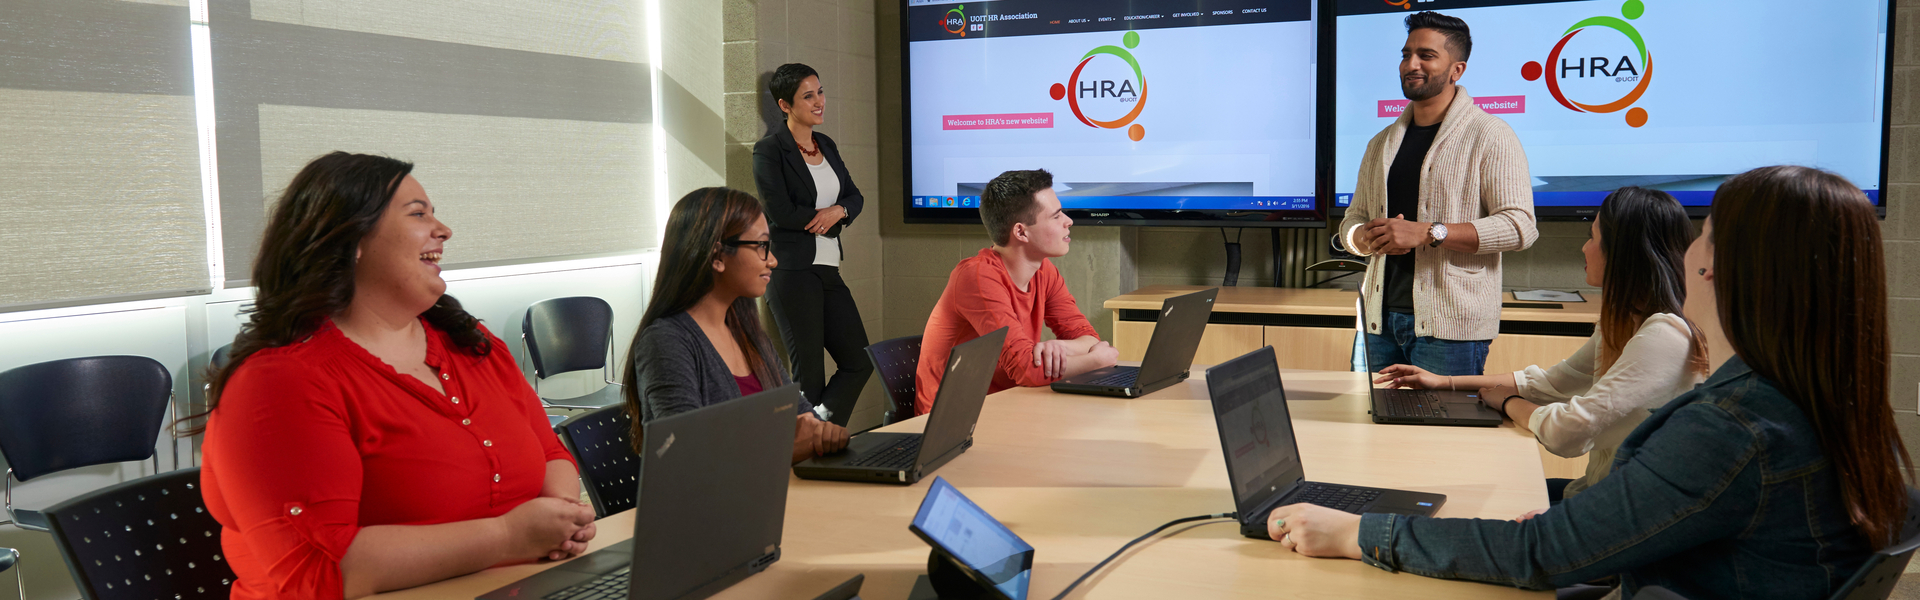 Students collaborating in a meeting room